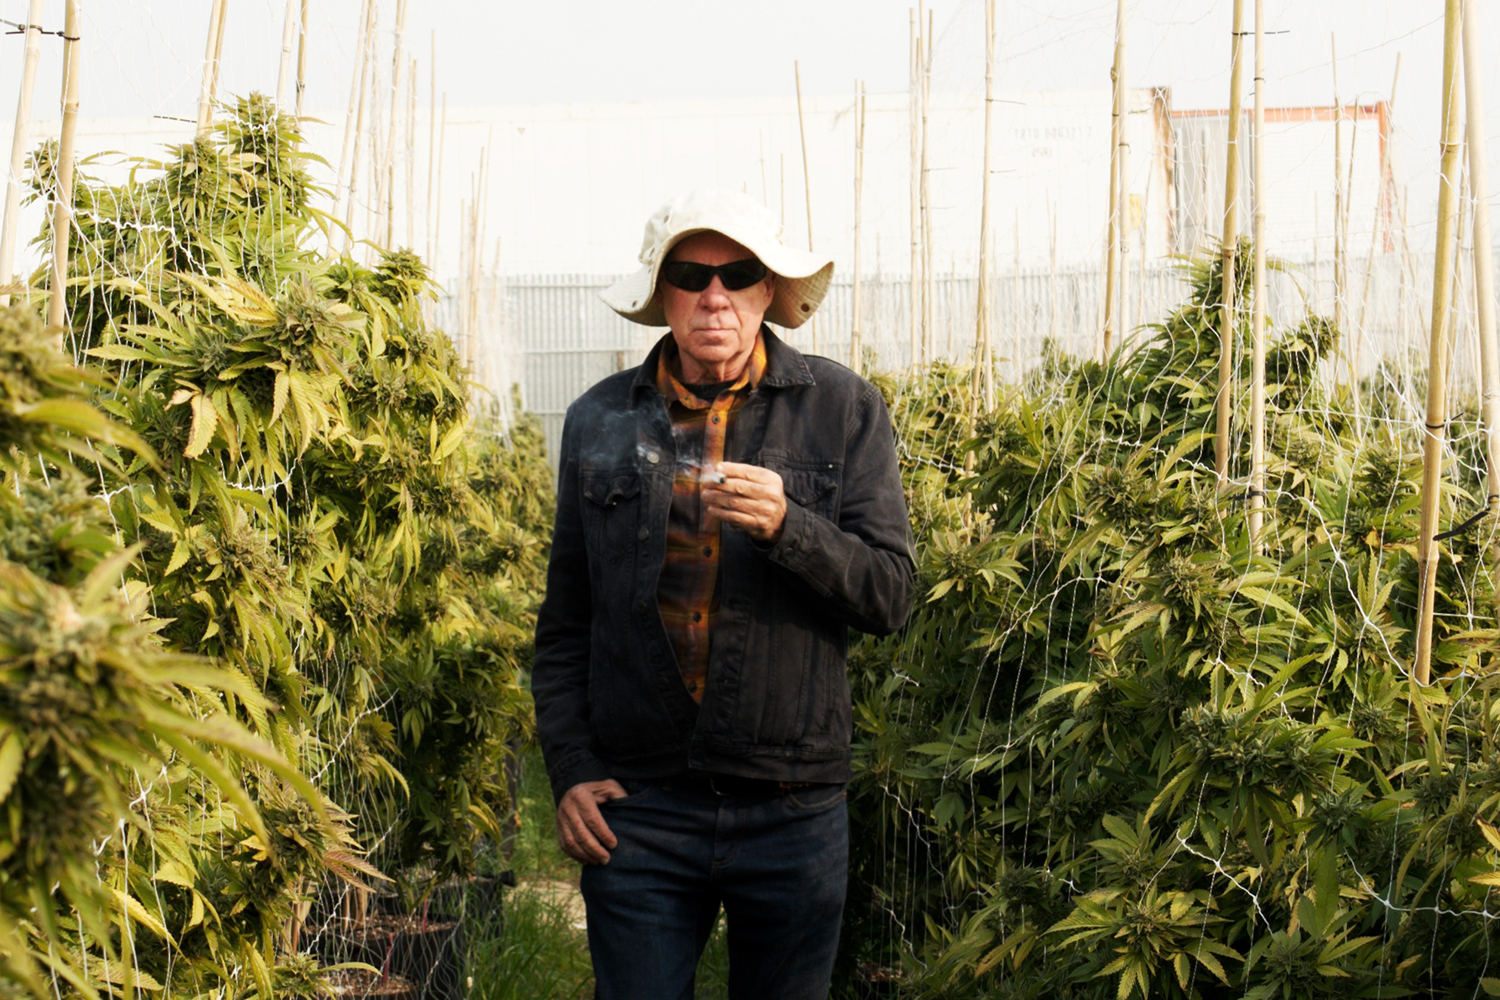 It wasn't long ago that the idea of growing an acre of marijuana outdoors, in an urban area, was just a fantasy.